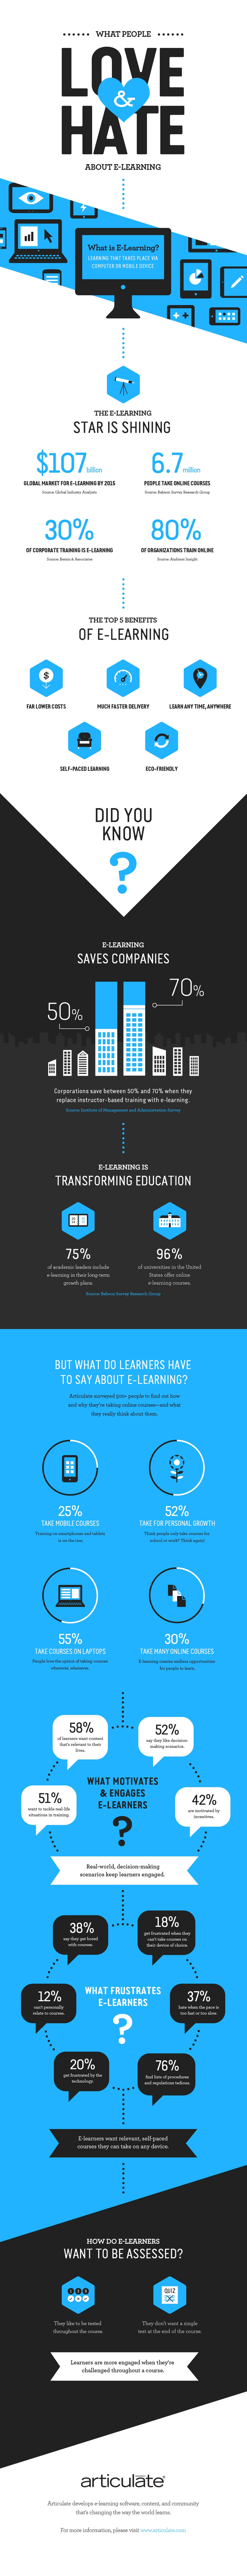 What People Love and Hate about eLearning Infographic